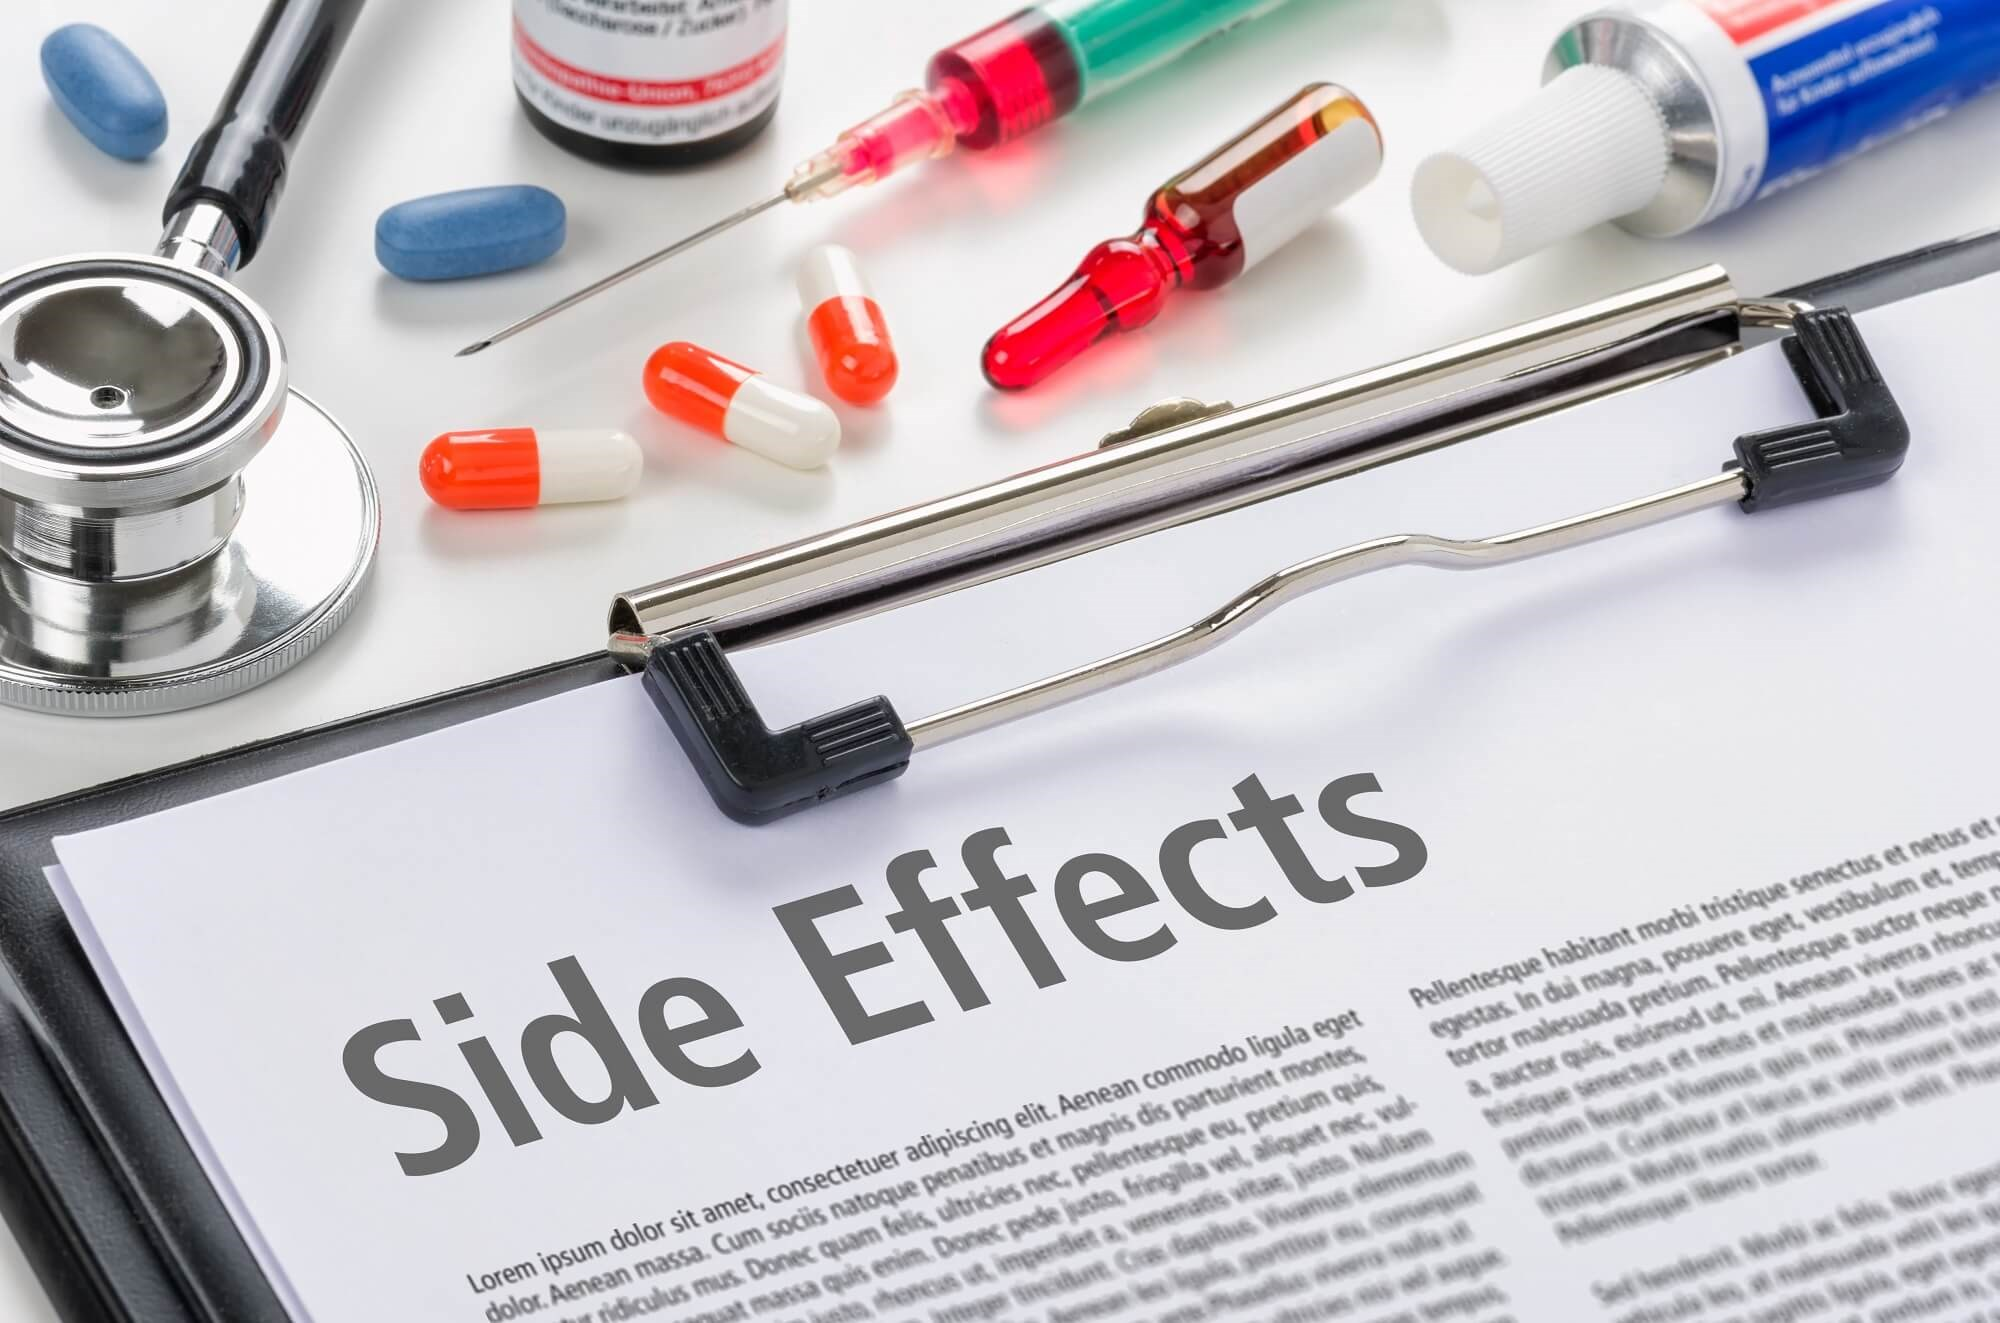 AHA Scientific Statement: Low Risk of Side Effects With Statins